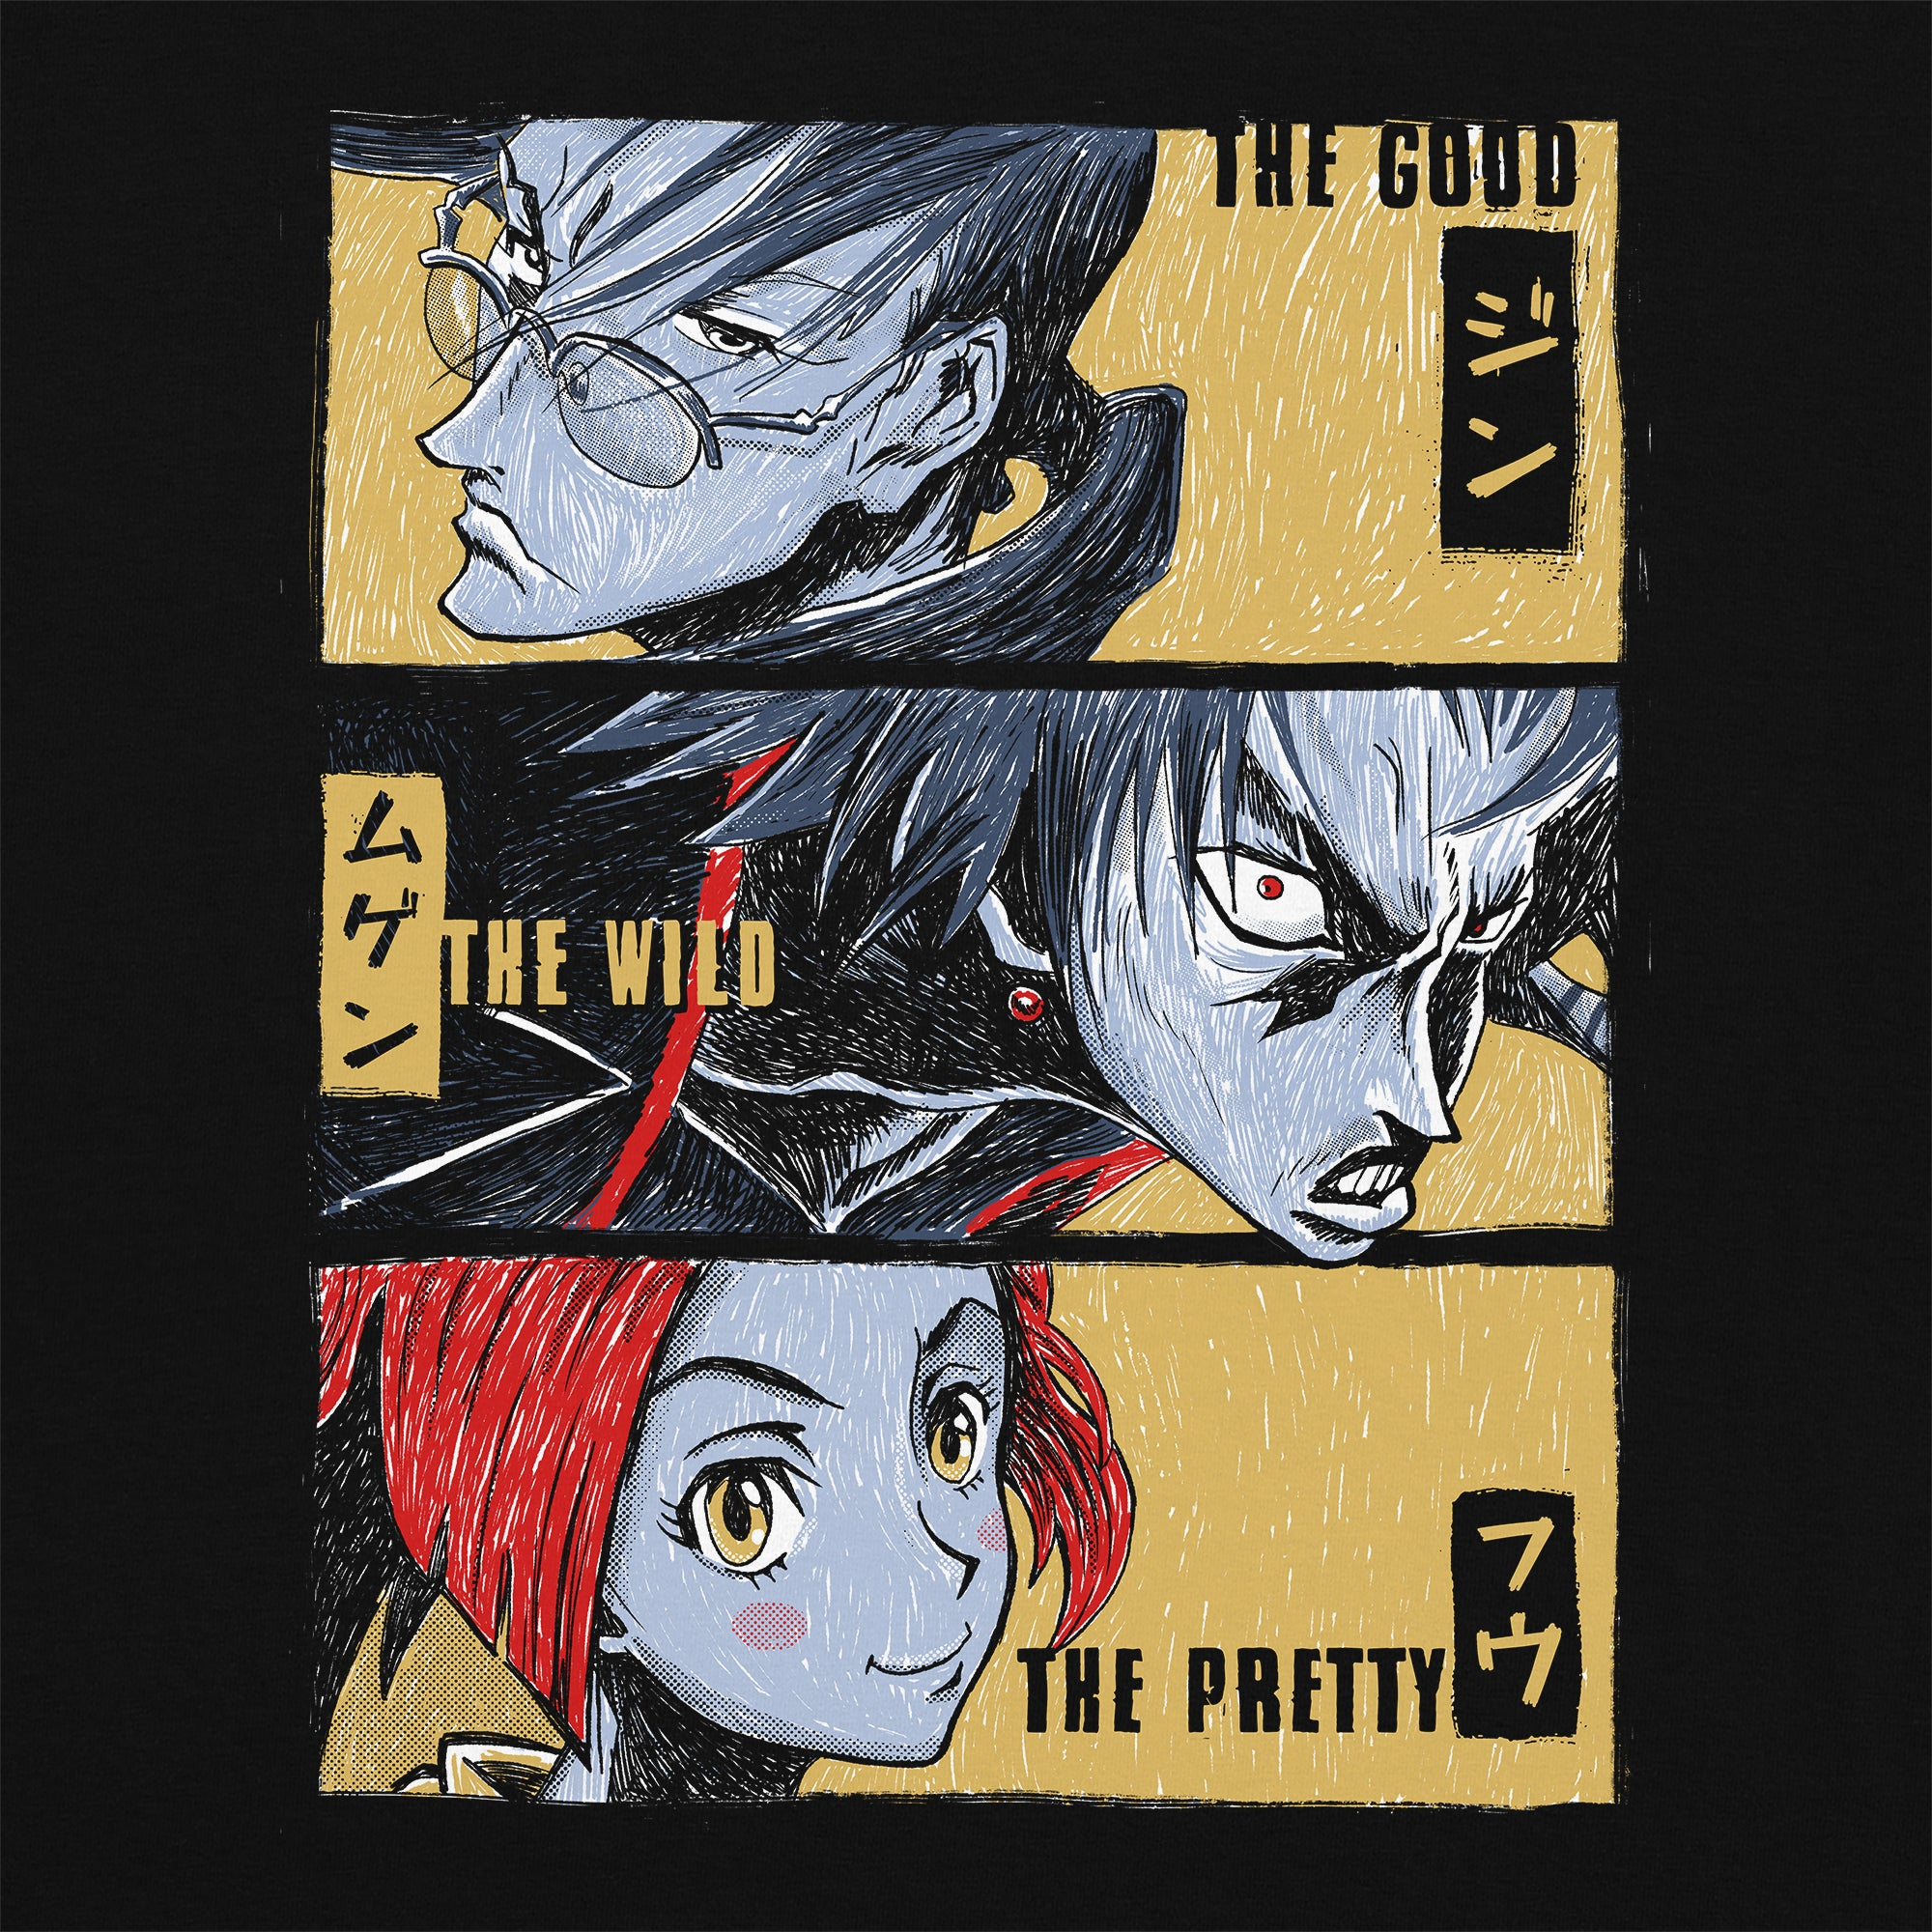 The Good, the Wild & the Pretty T-Shirt